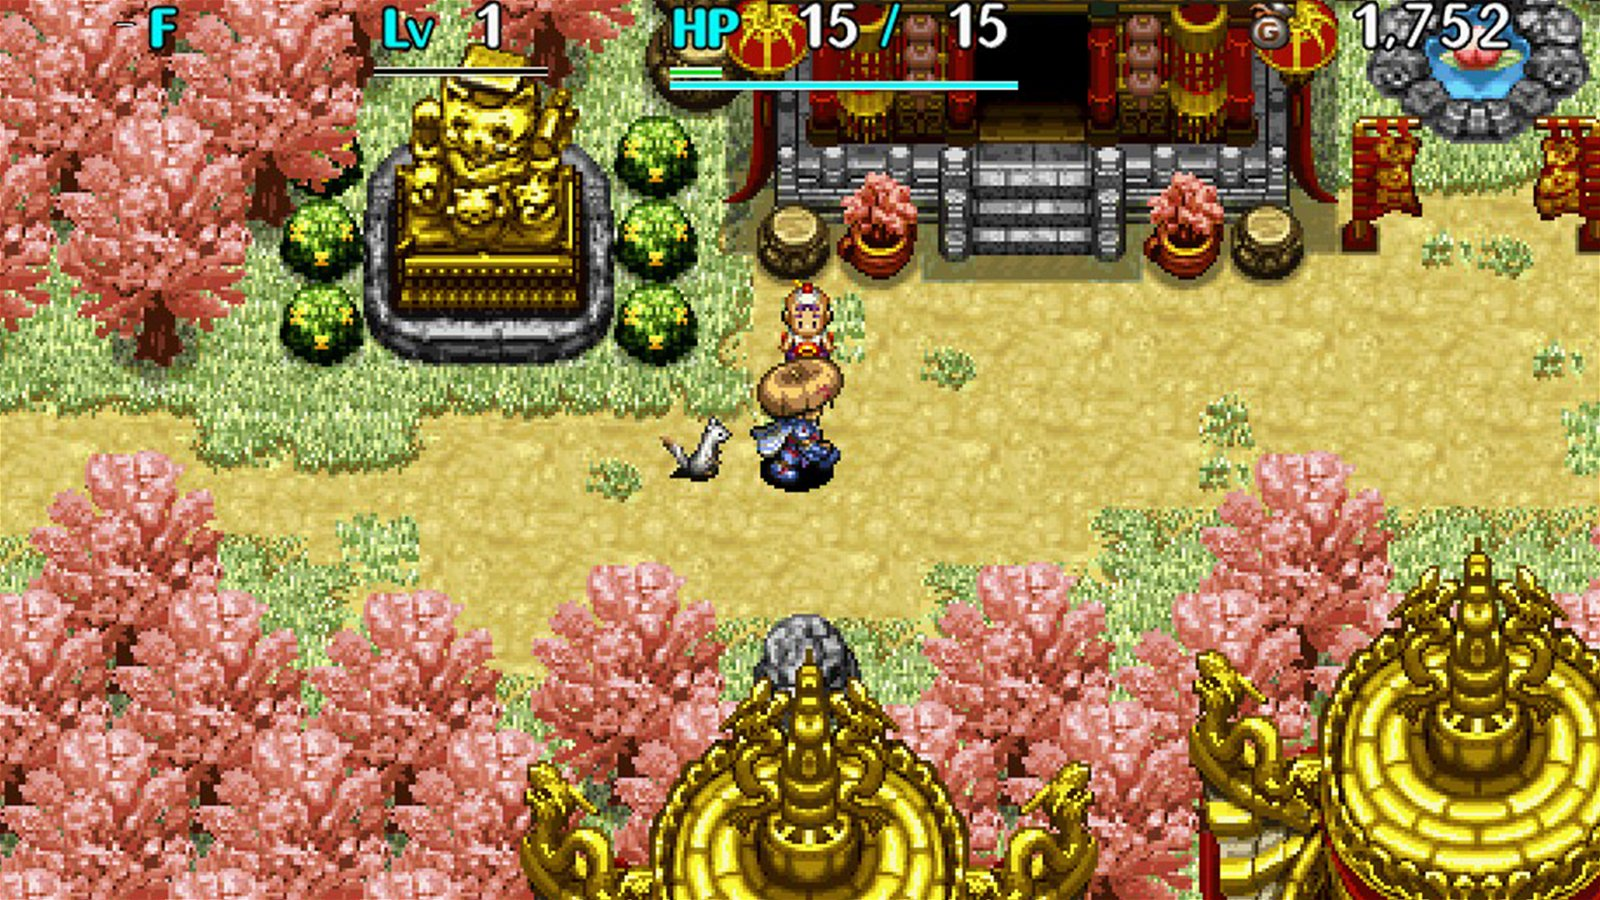 Shiren The Wanderer: The Tower Of Fortune And The Dice Of Fate (Ps Vita) Review 5